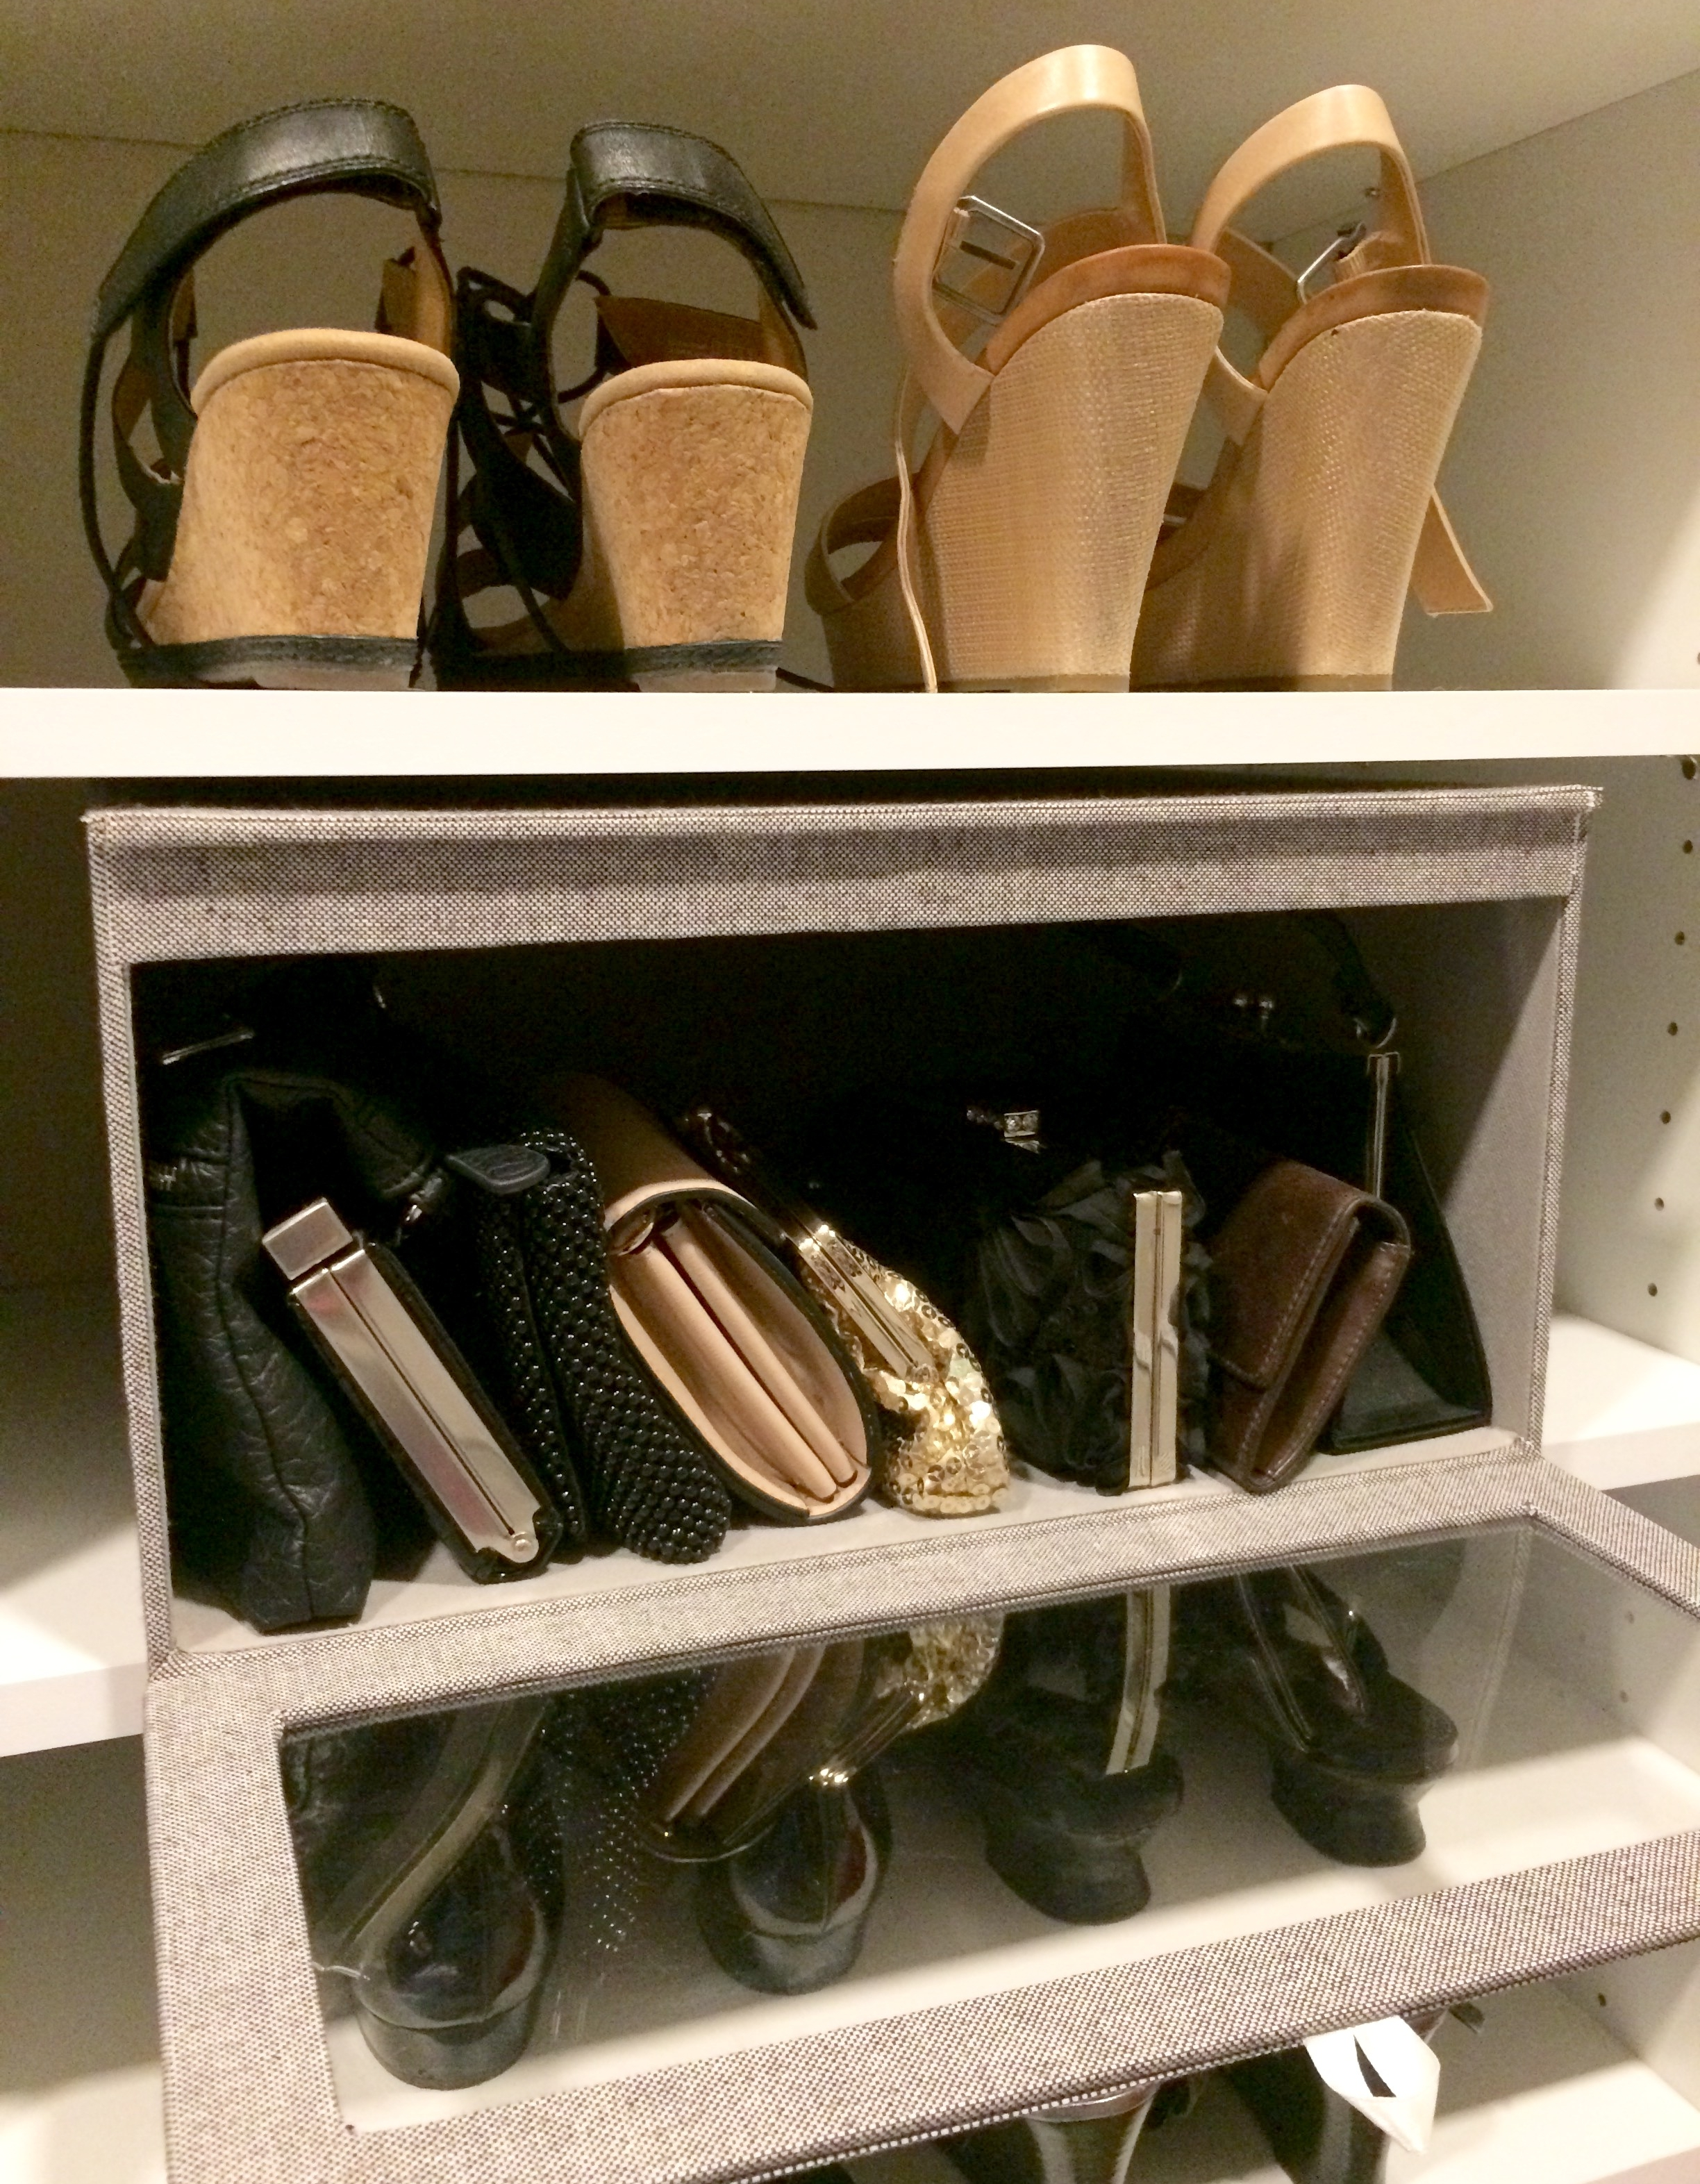 Transparent front-opening storage boxes are a beautiful way to store small handbags and other items that would otherwise be difficult to keep organized.  Call Closets of Tulsa  today for a FREE consultation and 3-D closet design:  918.609.0214